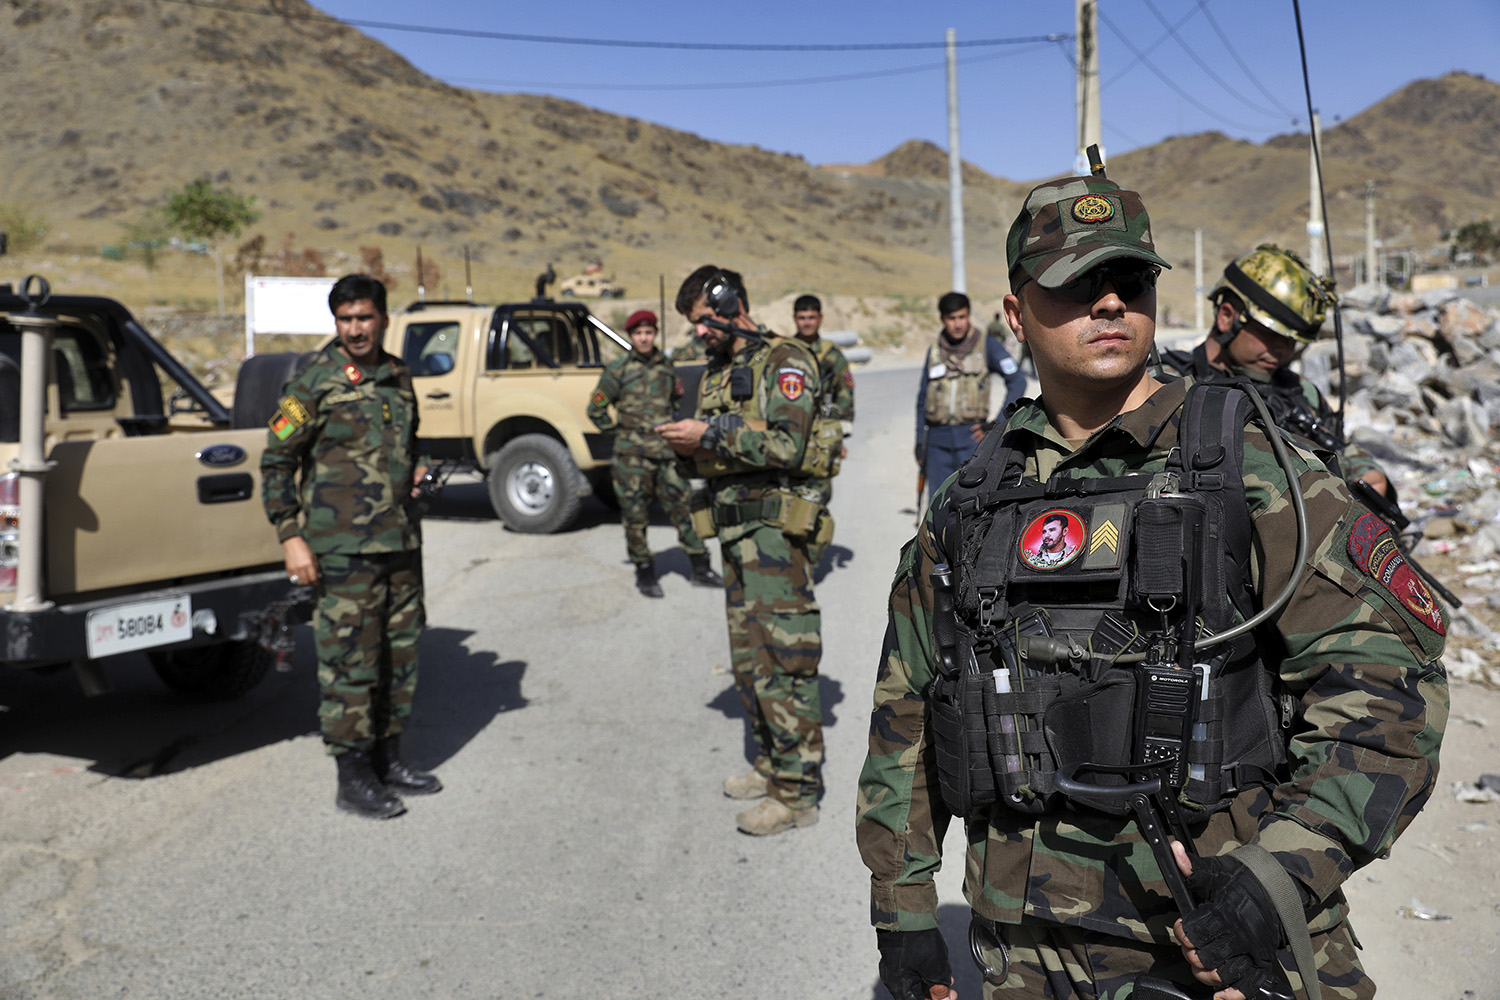 Afghan special forces stand guard at the site of a suicide car bomb explosion that killed at least four people, on the outskirts of Kabul, Afghanistan, Thursday, Sept. 12, 2019. (Ebrahim Noroozi/AP)